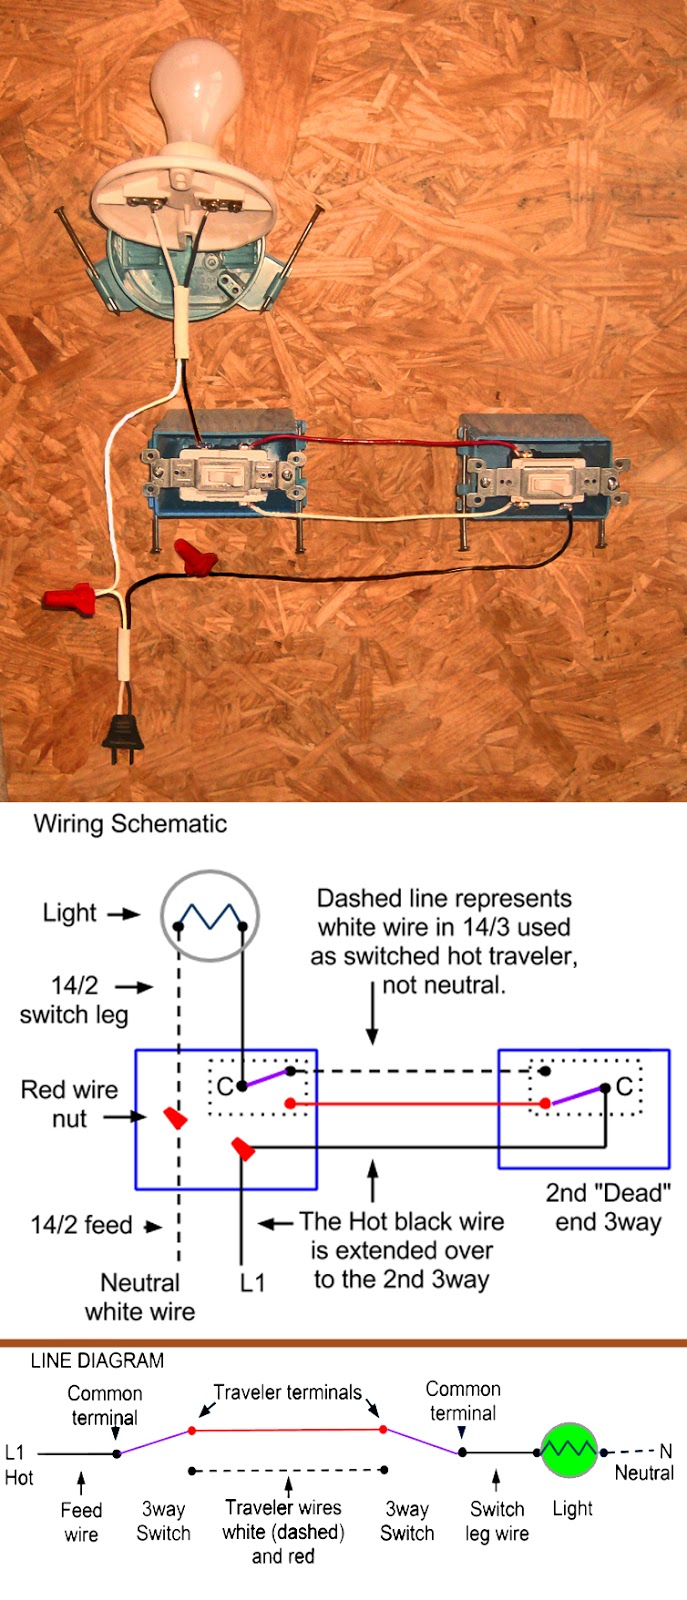 3 way switch wiring methods dead end and radical s3 3 way switch wiring methods 3 way switch wiring methods [ 687 x 1600 Pixel ]